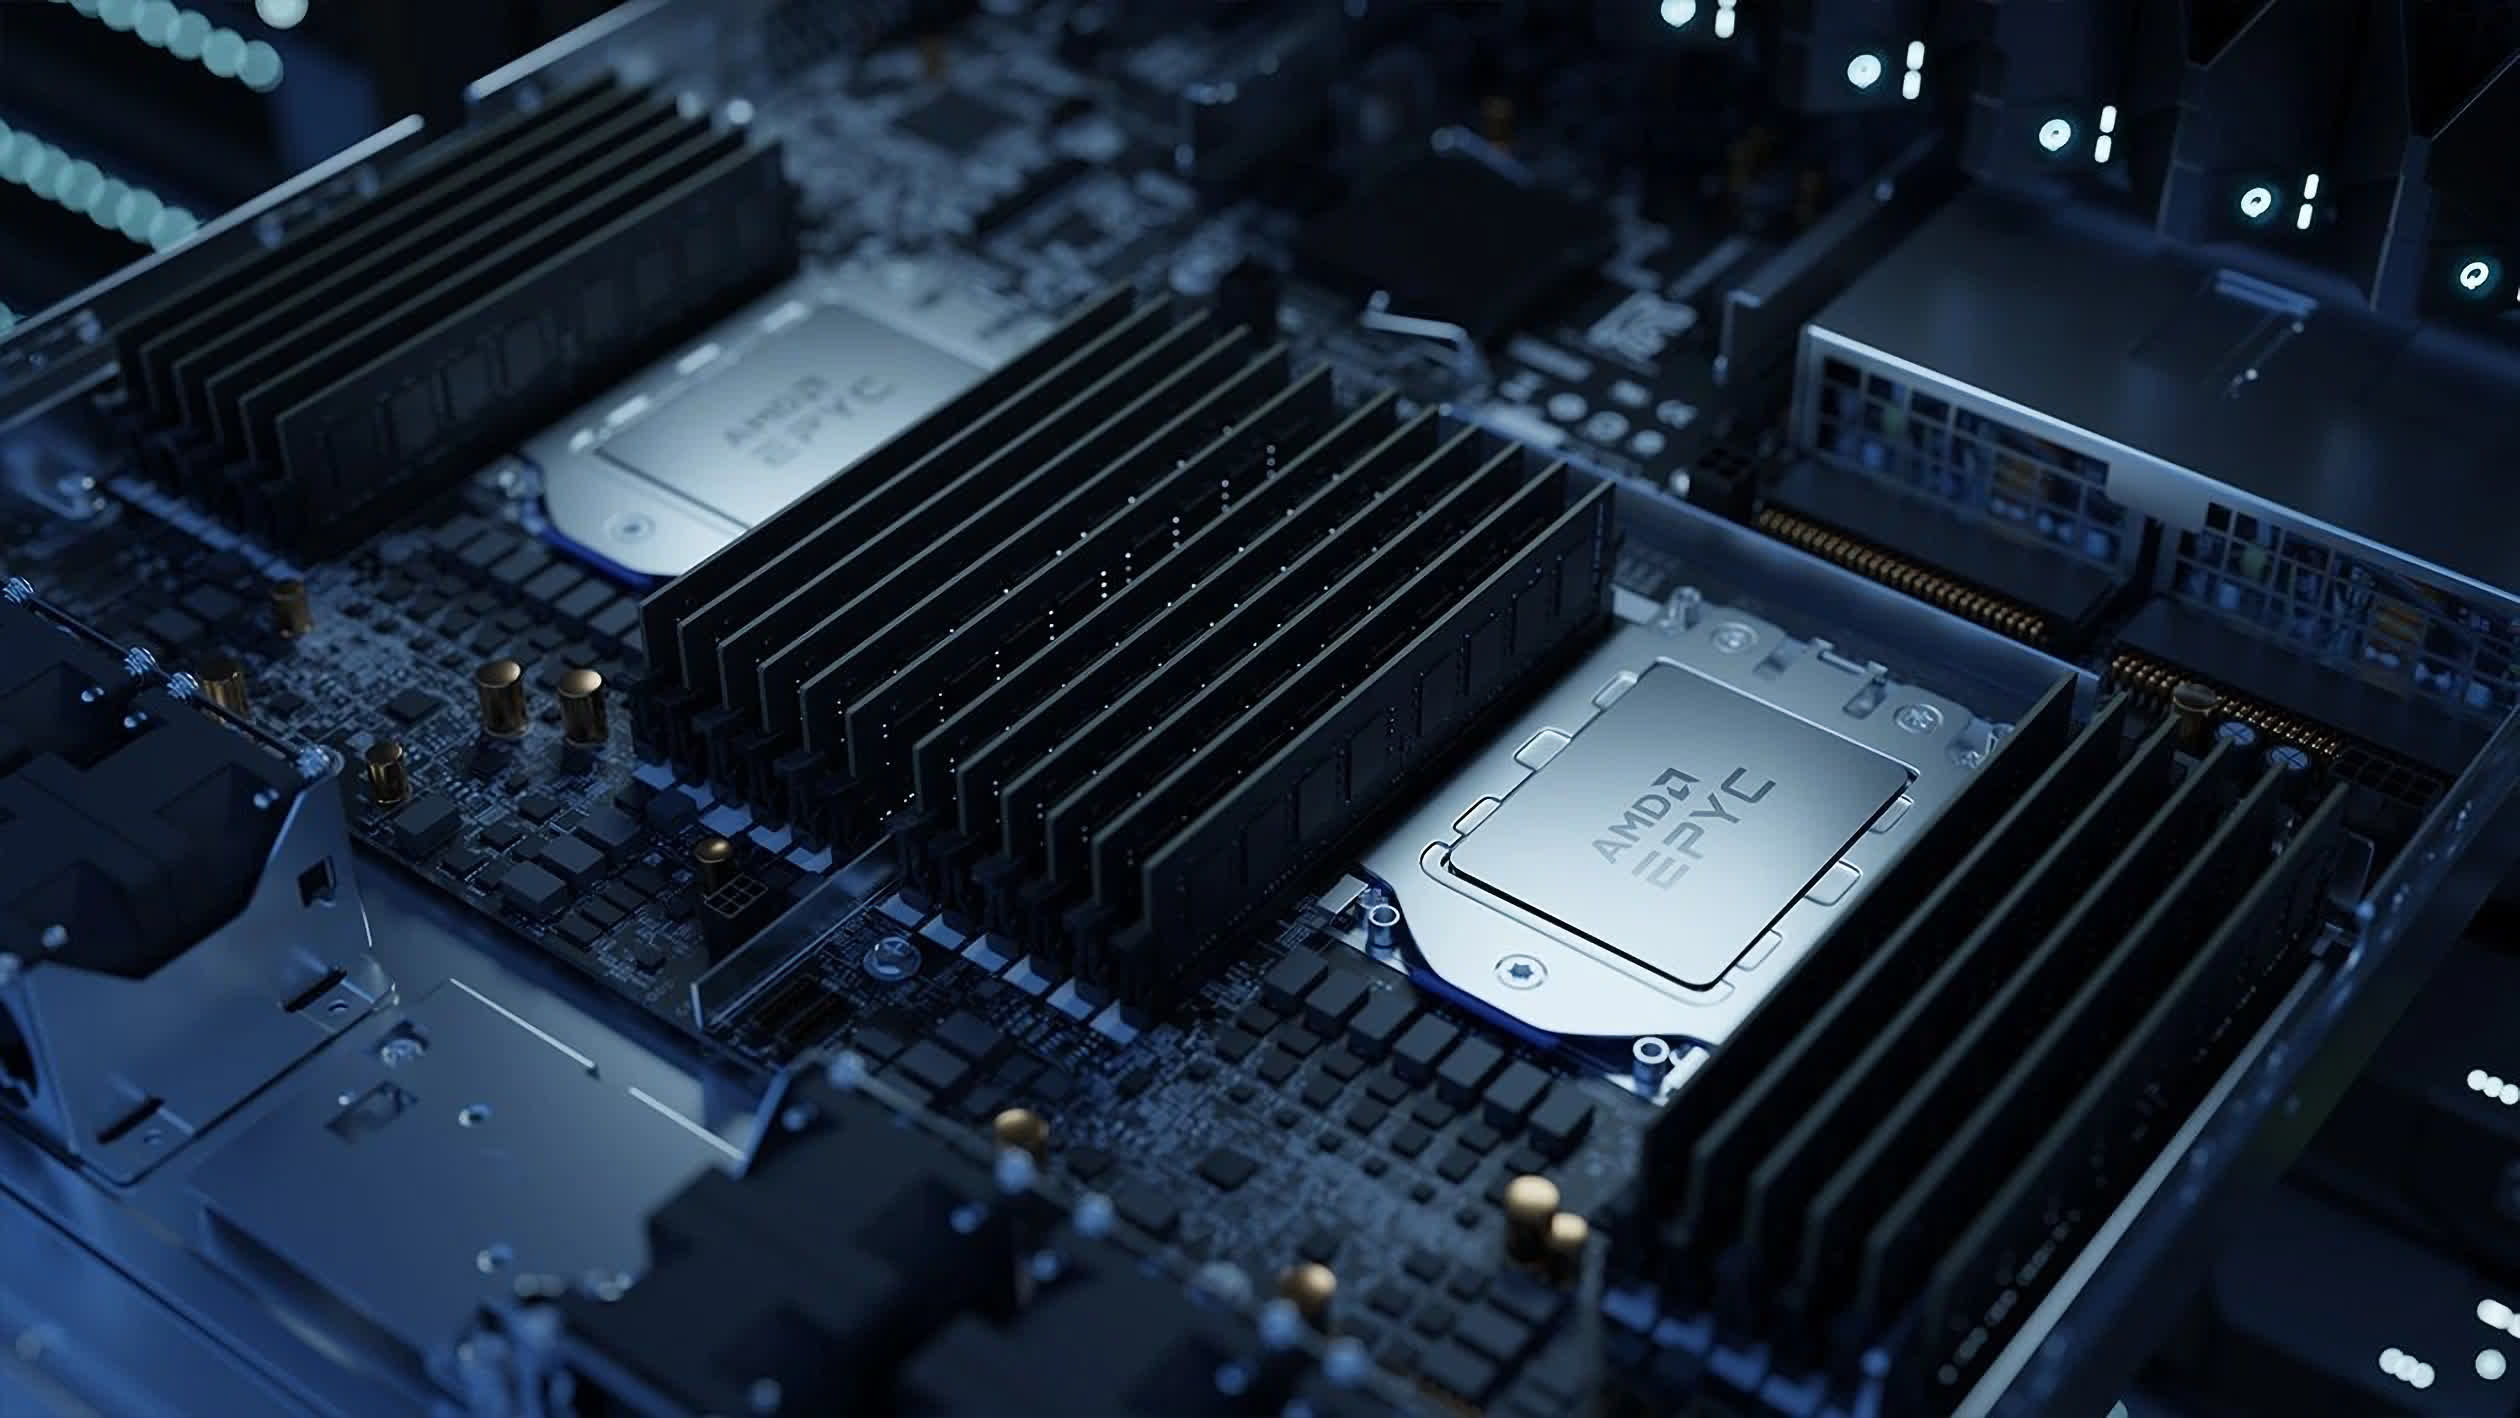 Netflix leverages AMD Epyc processors to achieve 400 Gbps video data flow per server